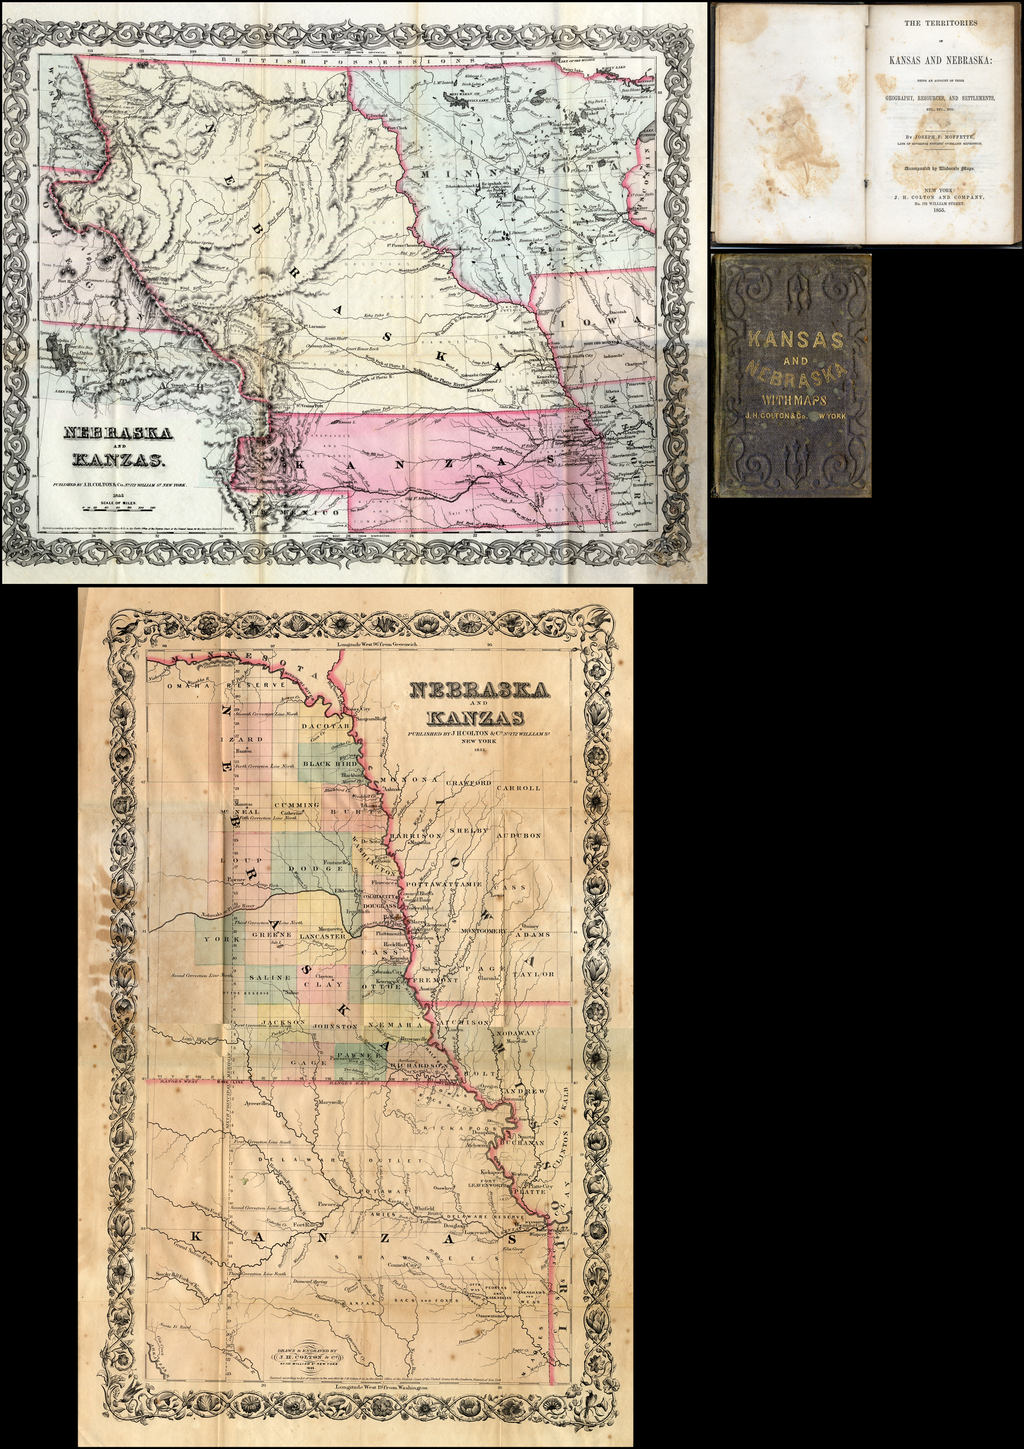 The Territories of Kansas and Nebraska:  Being An Account of Their Geography, Resources, and Settlements . . .  (with two early maps of Kansas & Nebraska) By Joseph F. Moffette